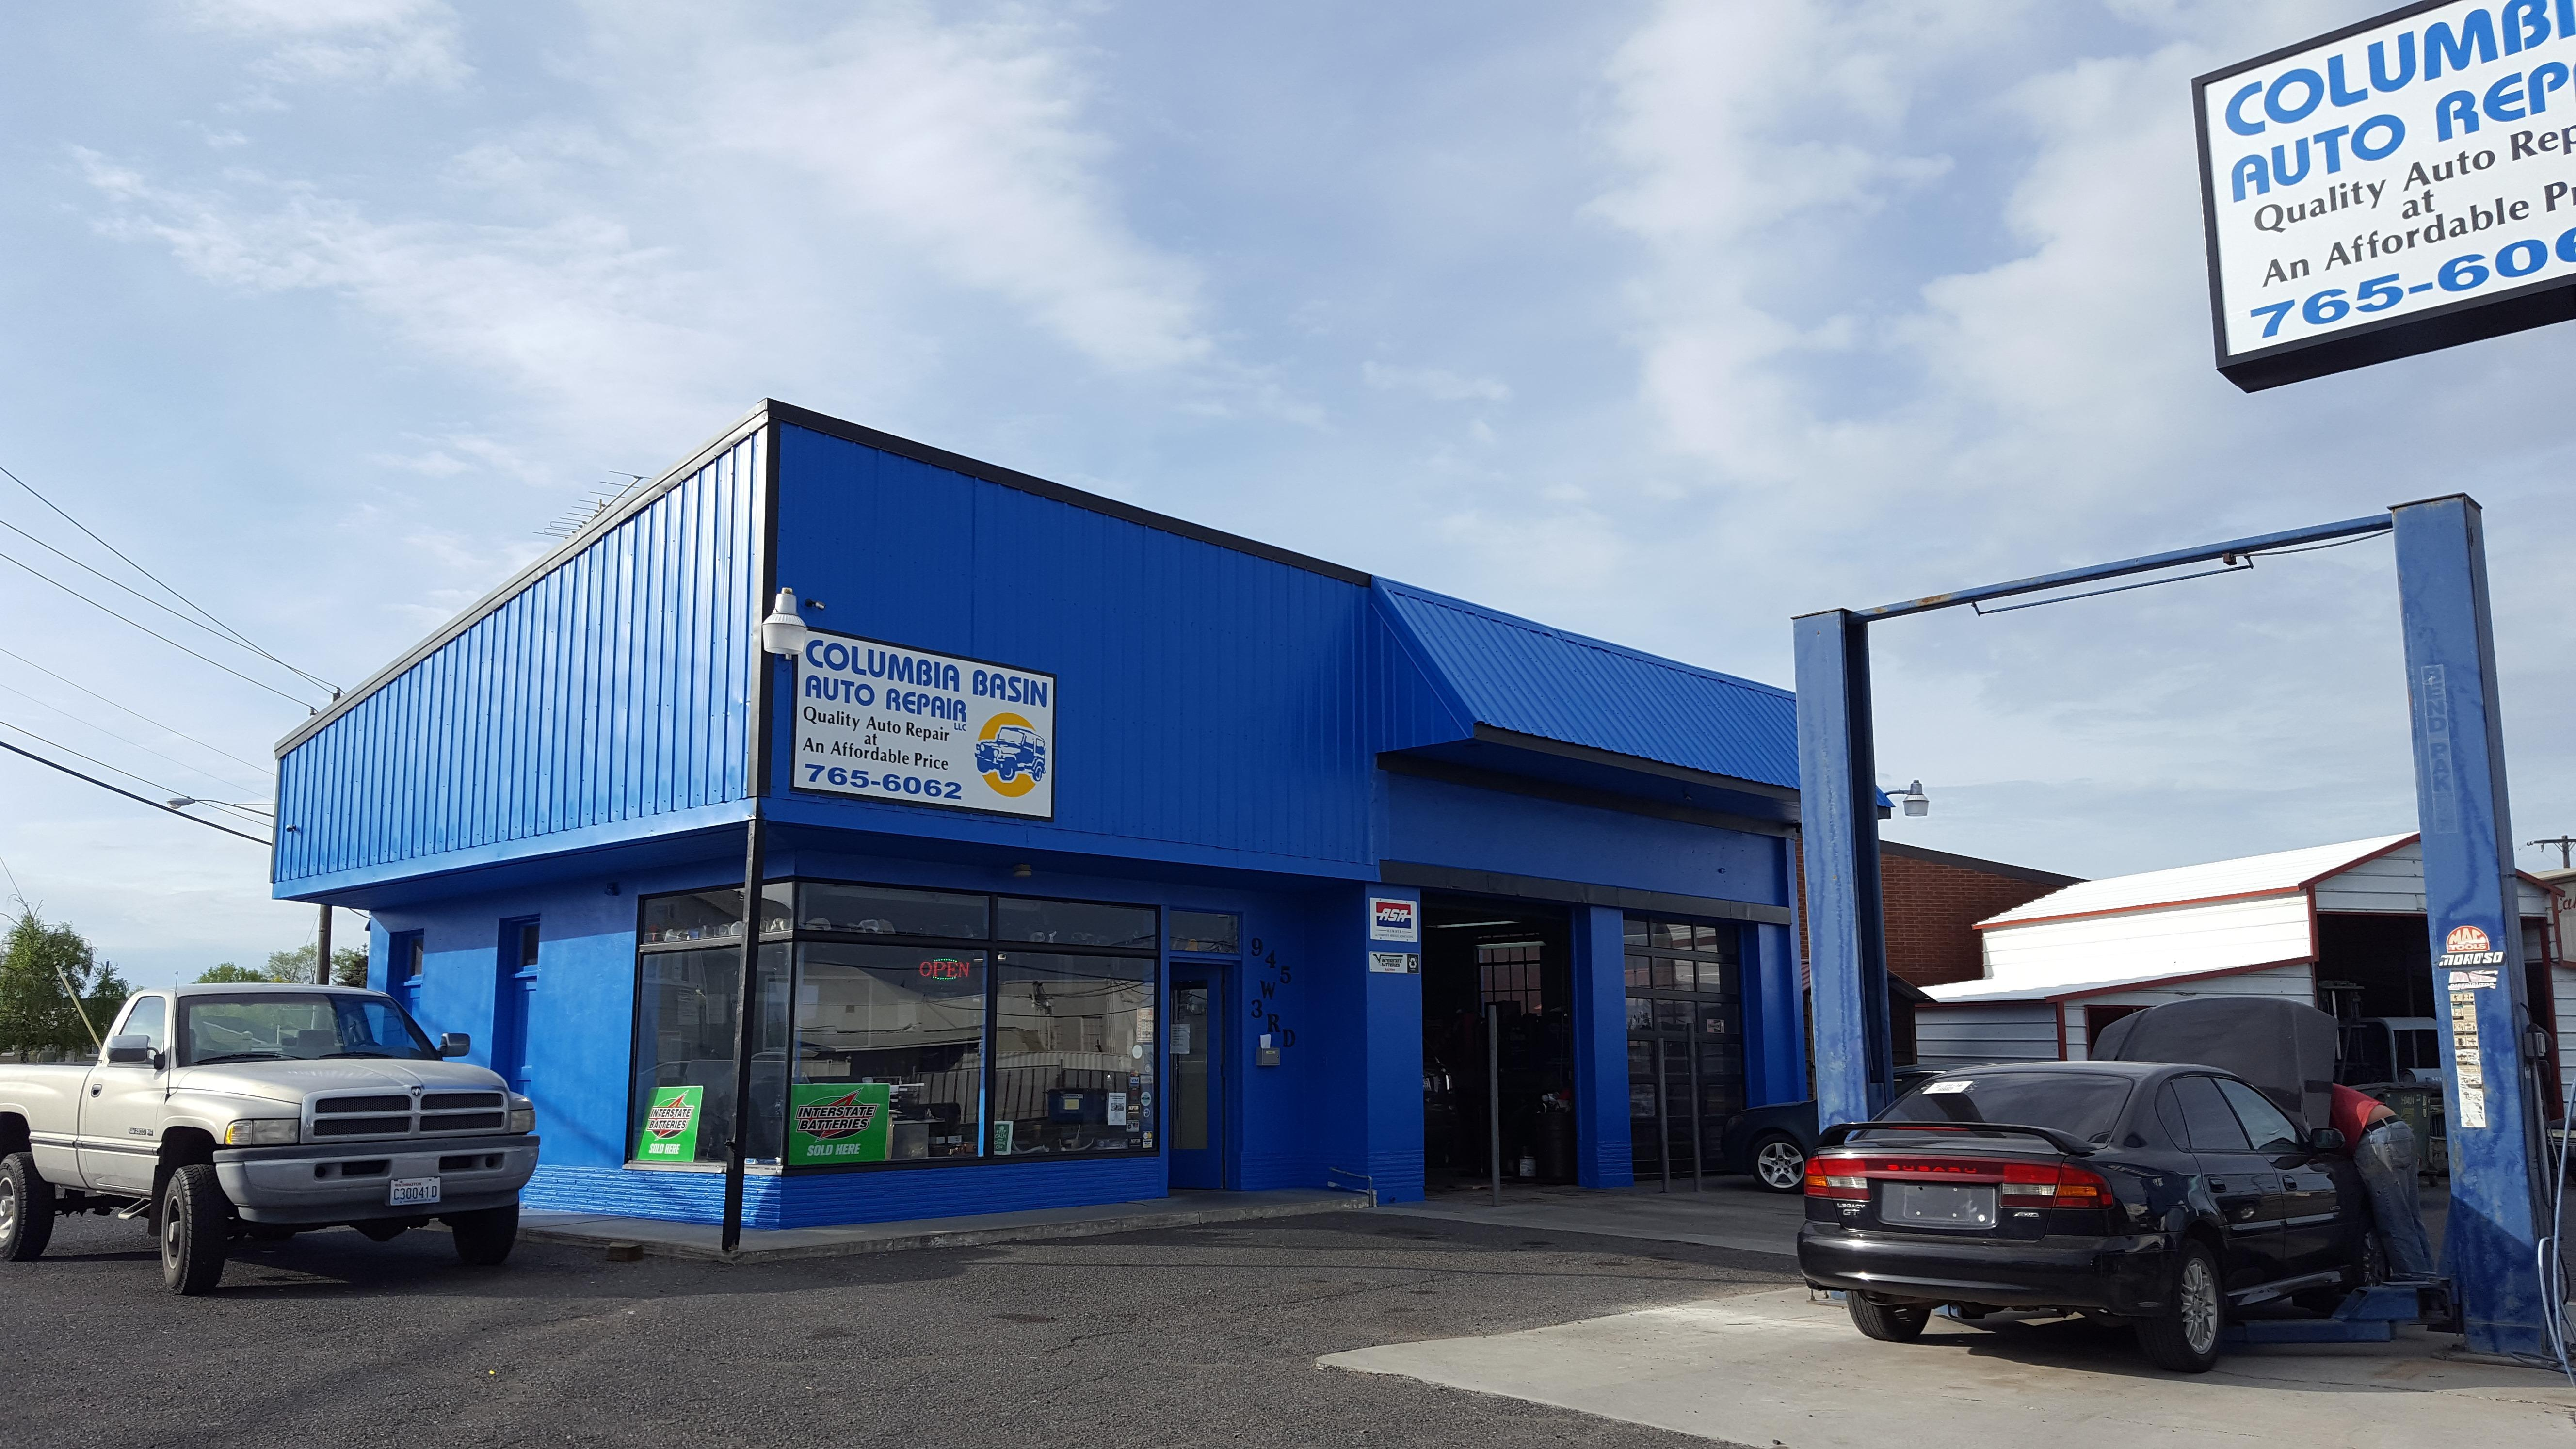 Columbia Basin Auto Repair, LLC image 1